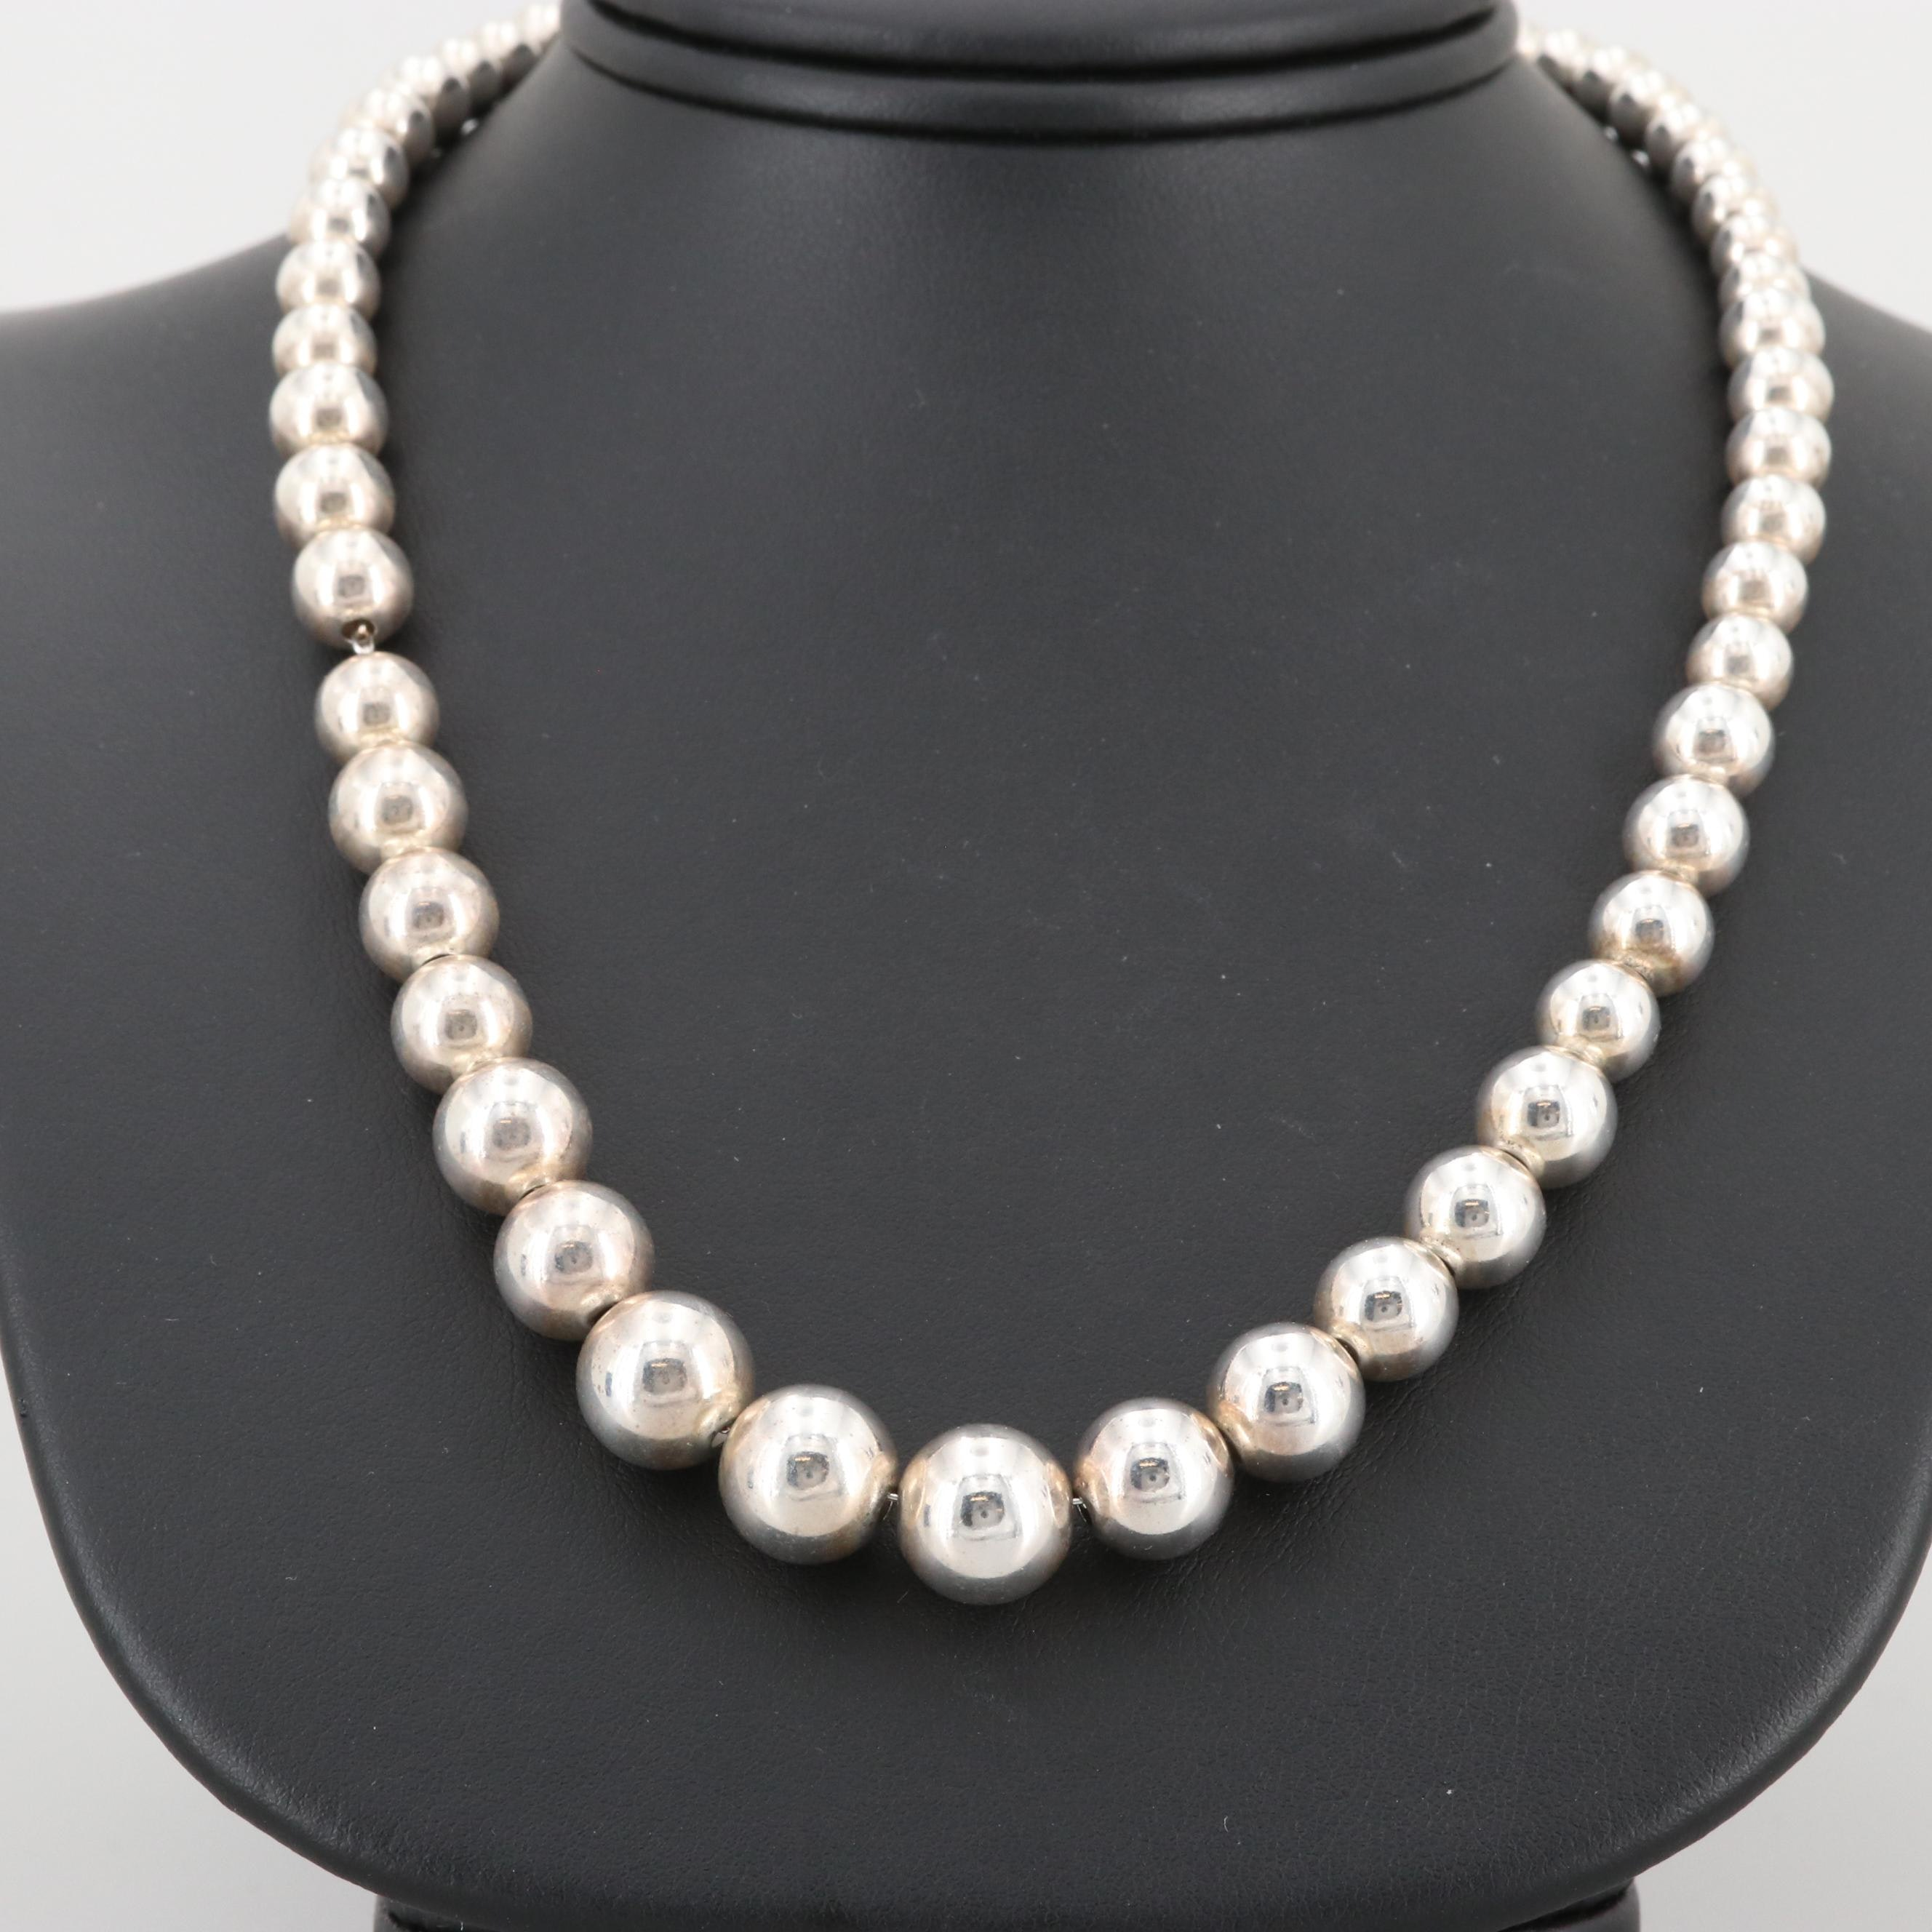 Tiffany & Co. Sterling Silver Graduated Bead Necklace